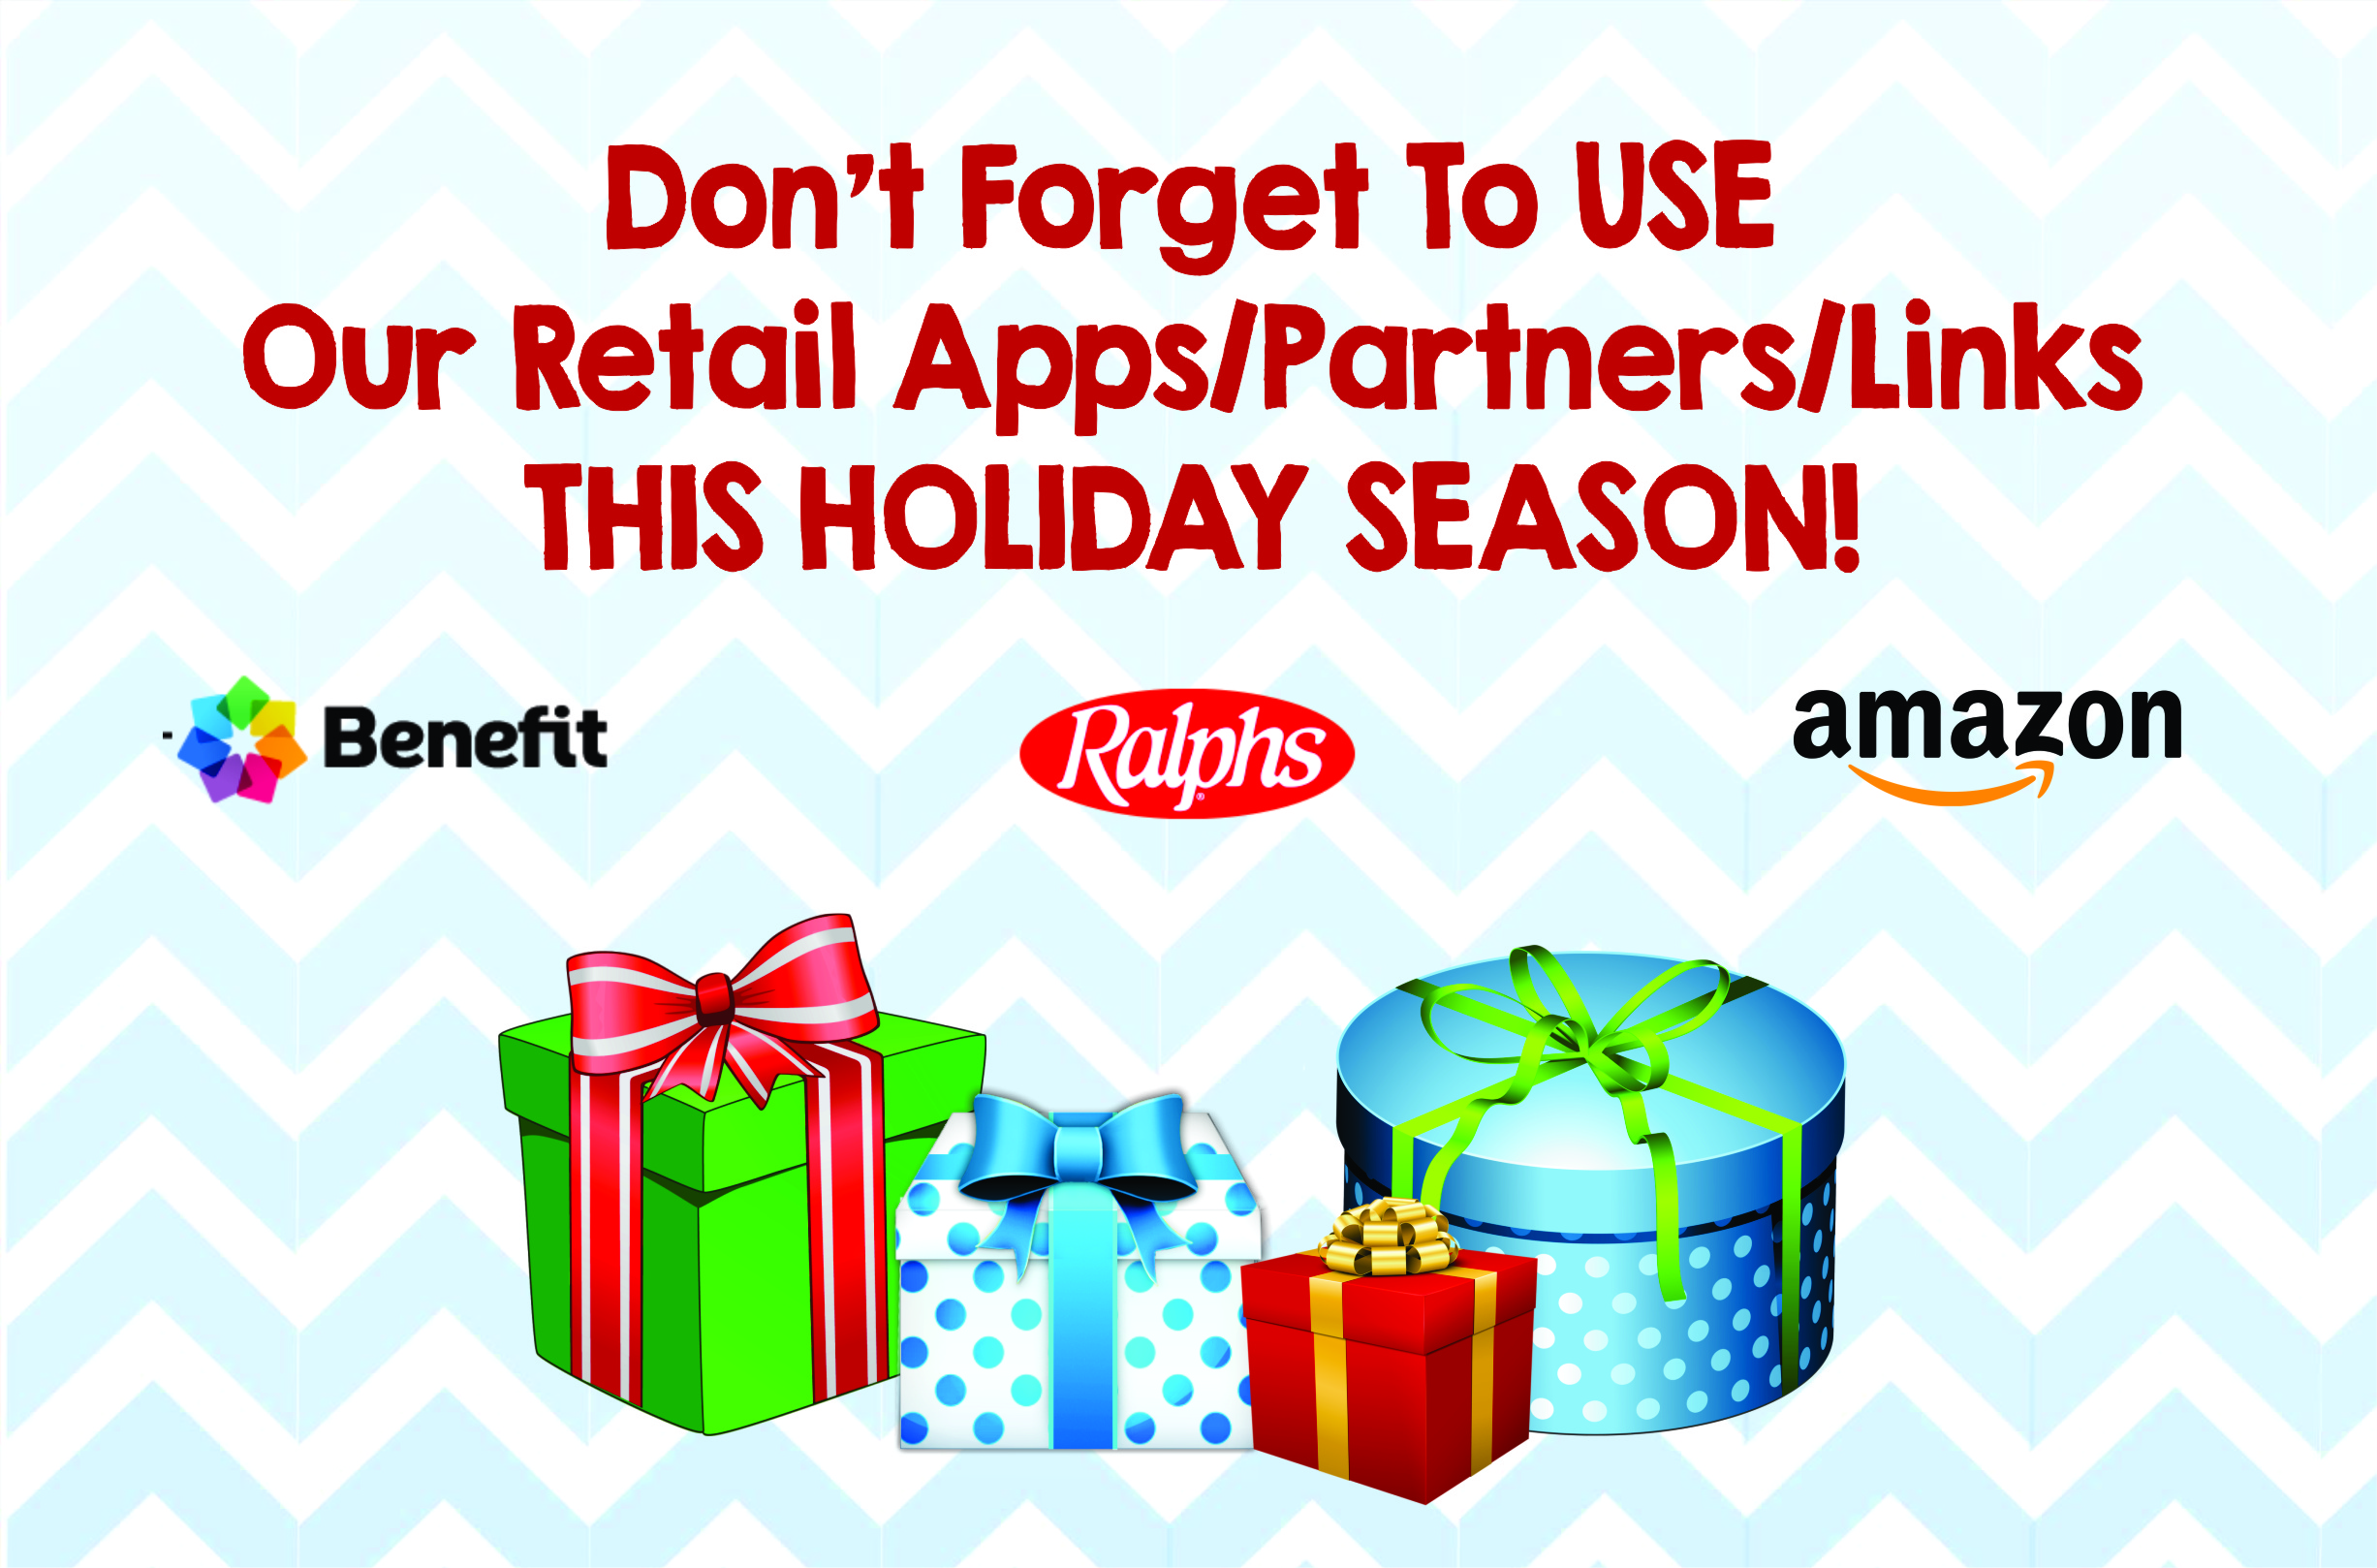 SHOP OUR HOLIDAY RETAILERS